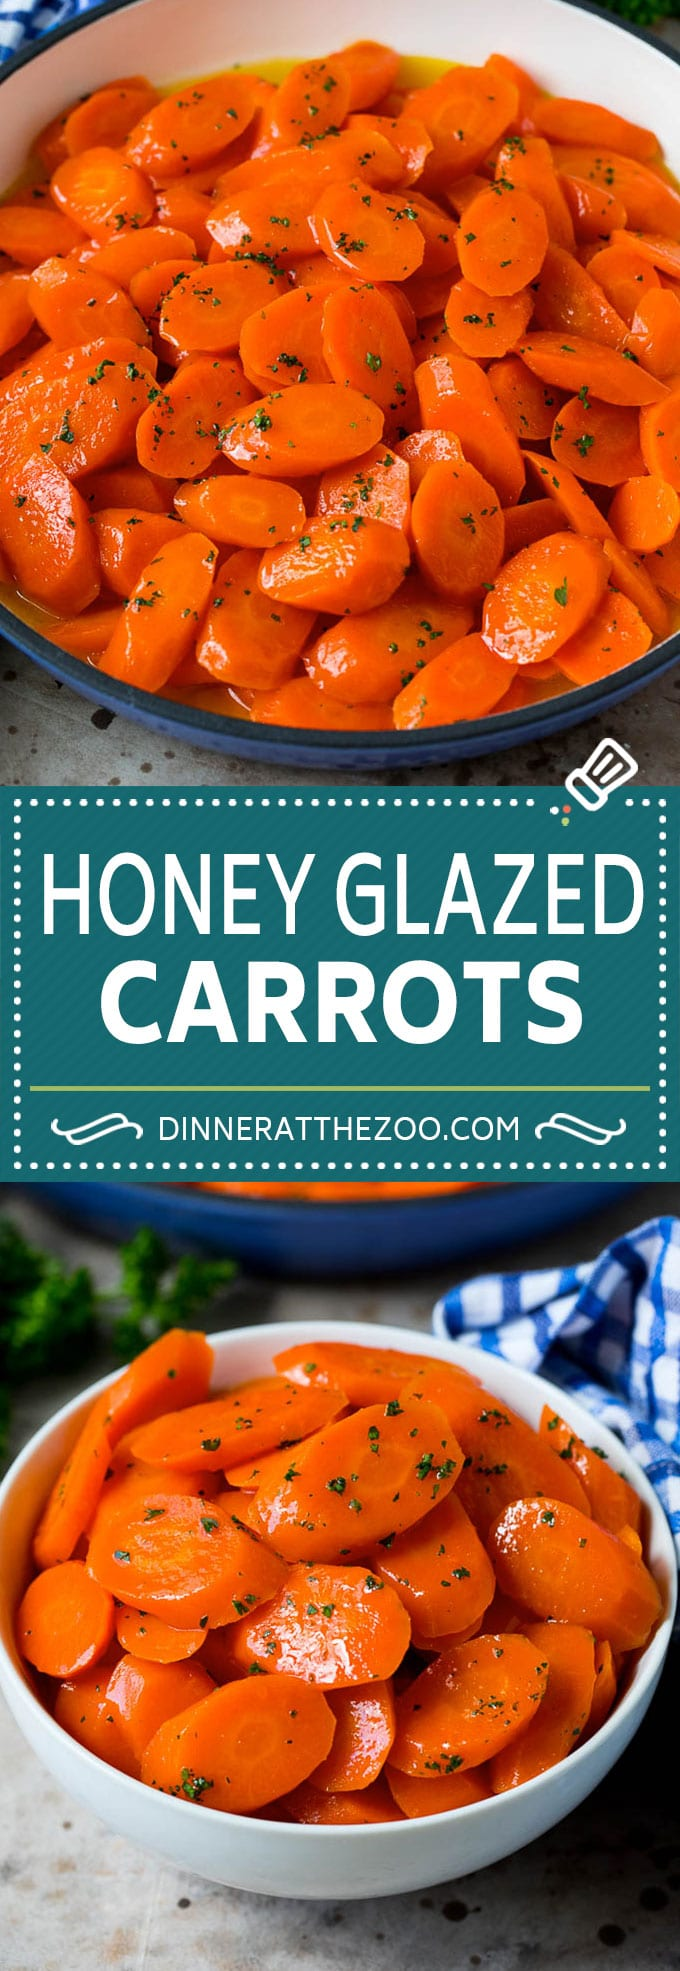 These honey glazed carrots are the perfect easy side dish option.